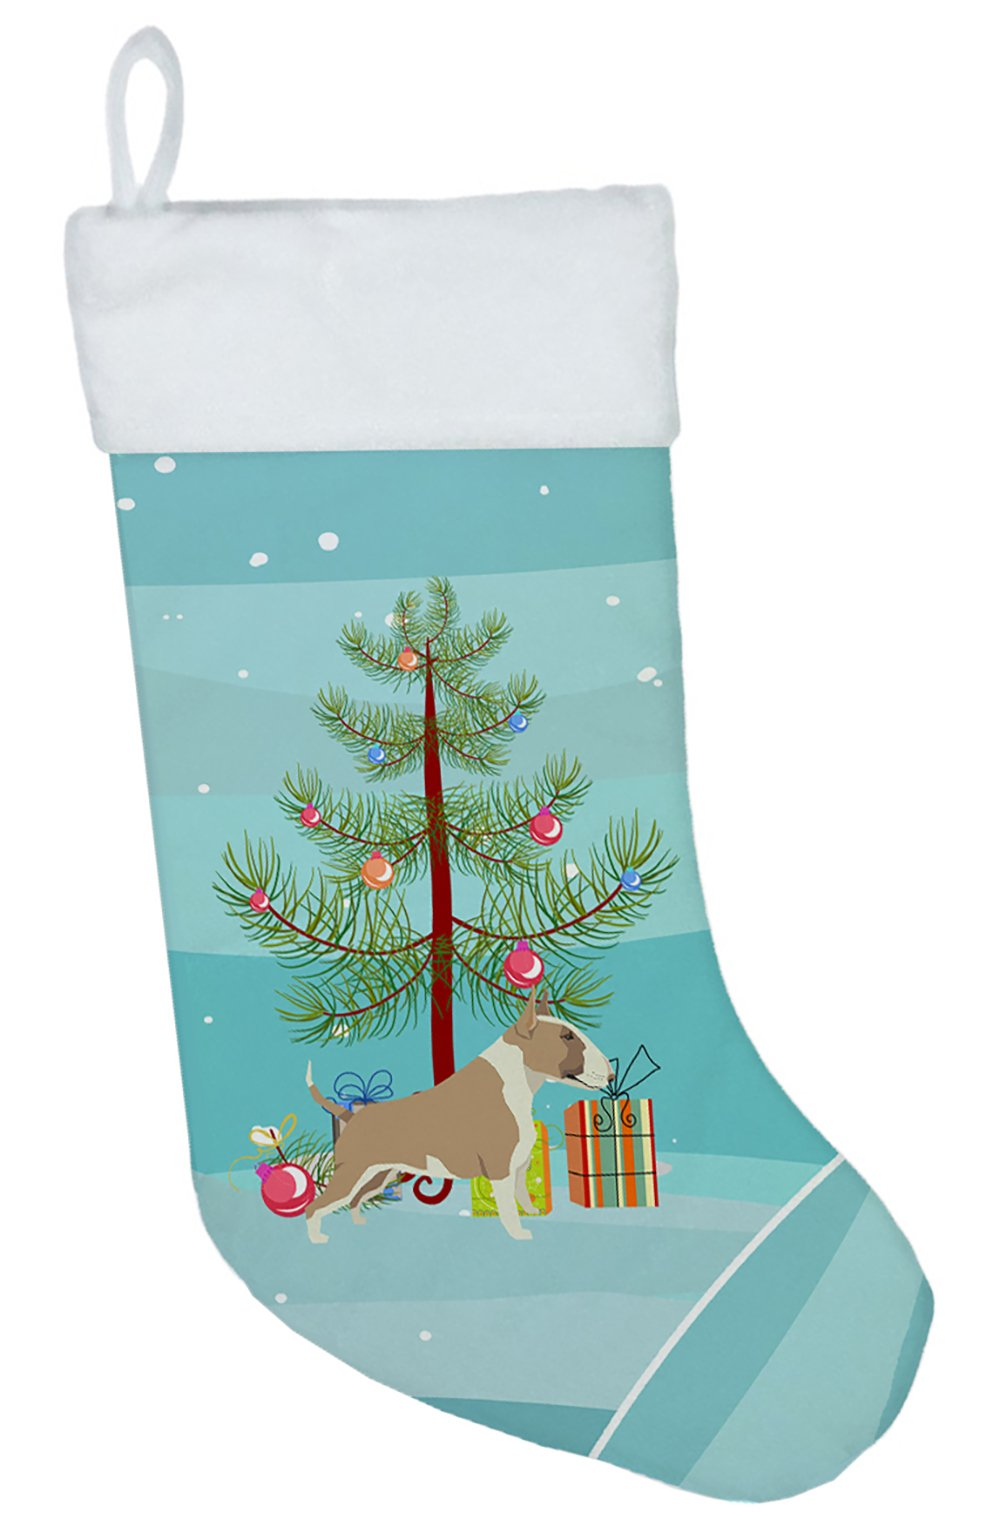 Fawn and White Bull Terrier Christmas Tree Christmas Stocking CK3528CS by Caroline's Treasures